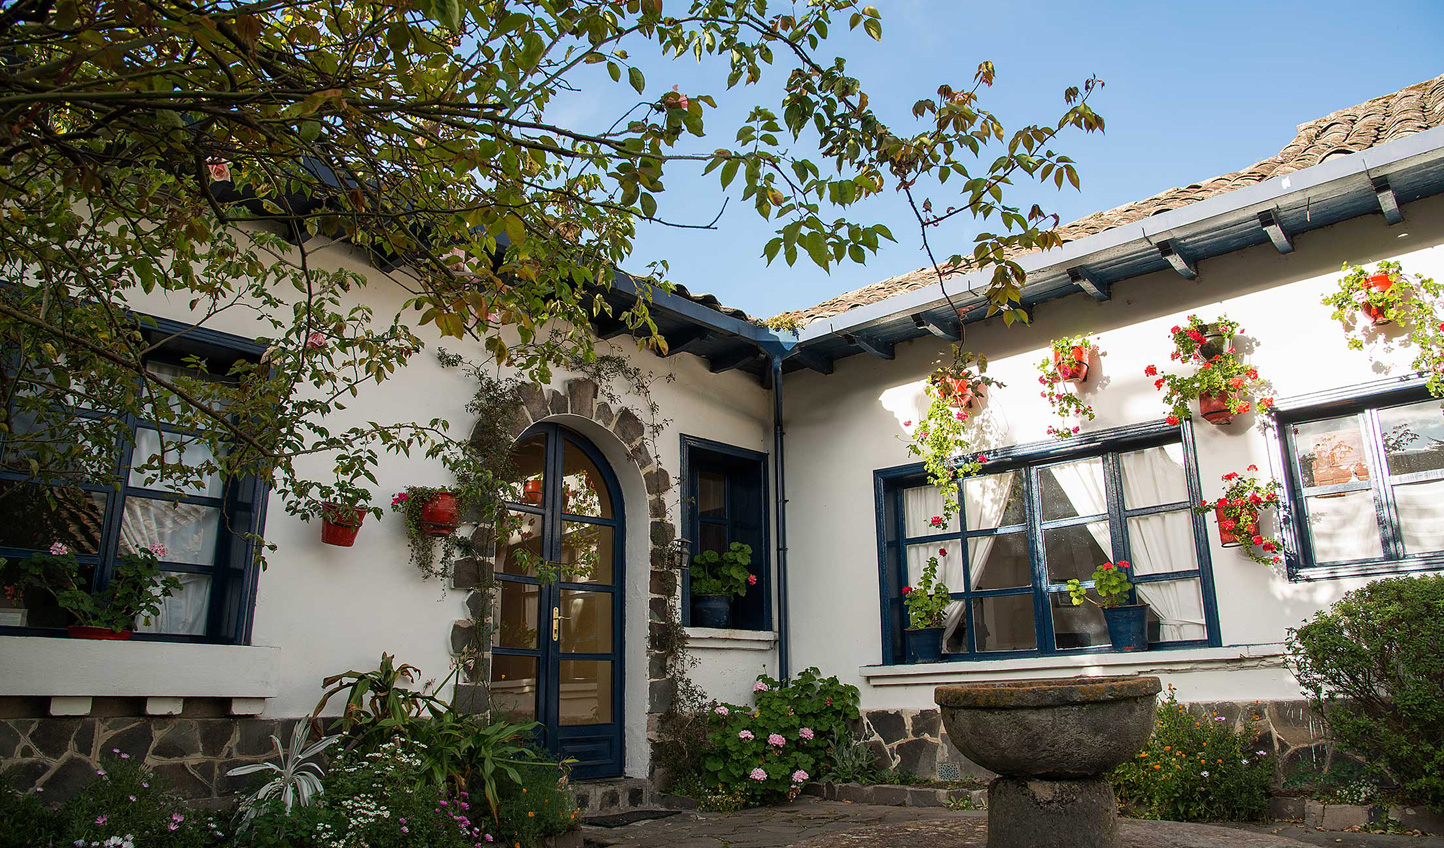 The quaint boutique hotel, Hacienda Zuleta